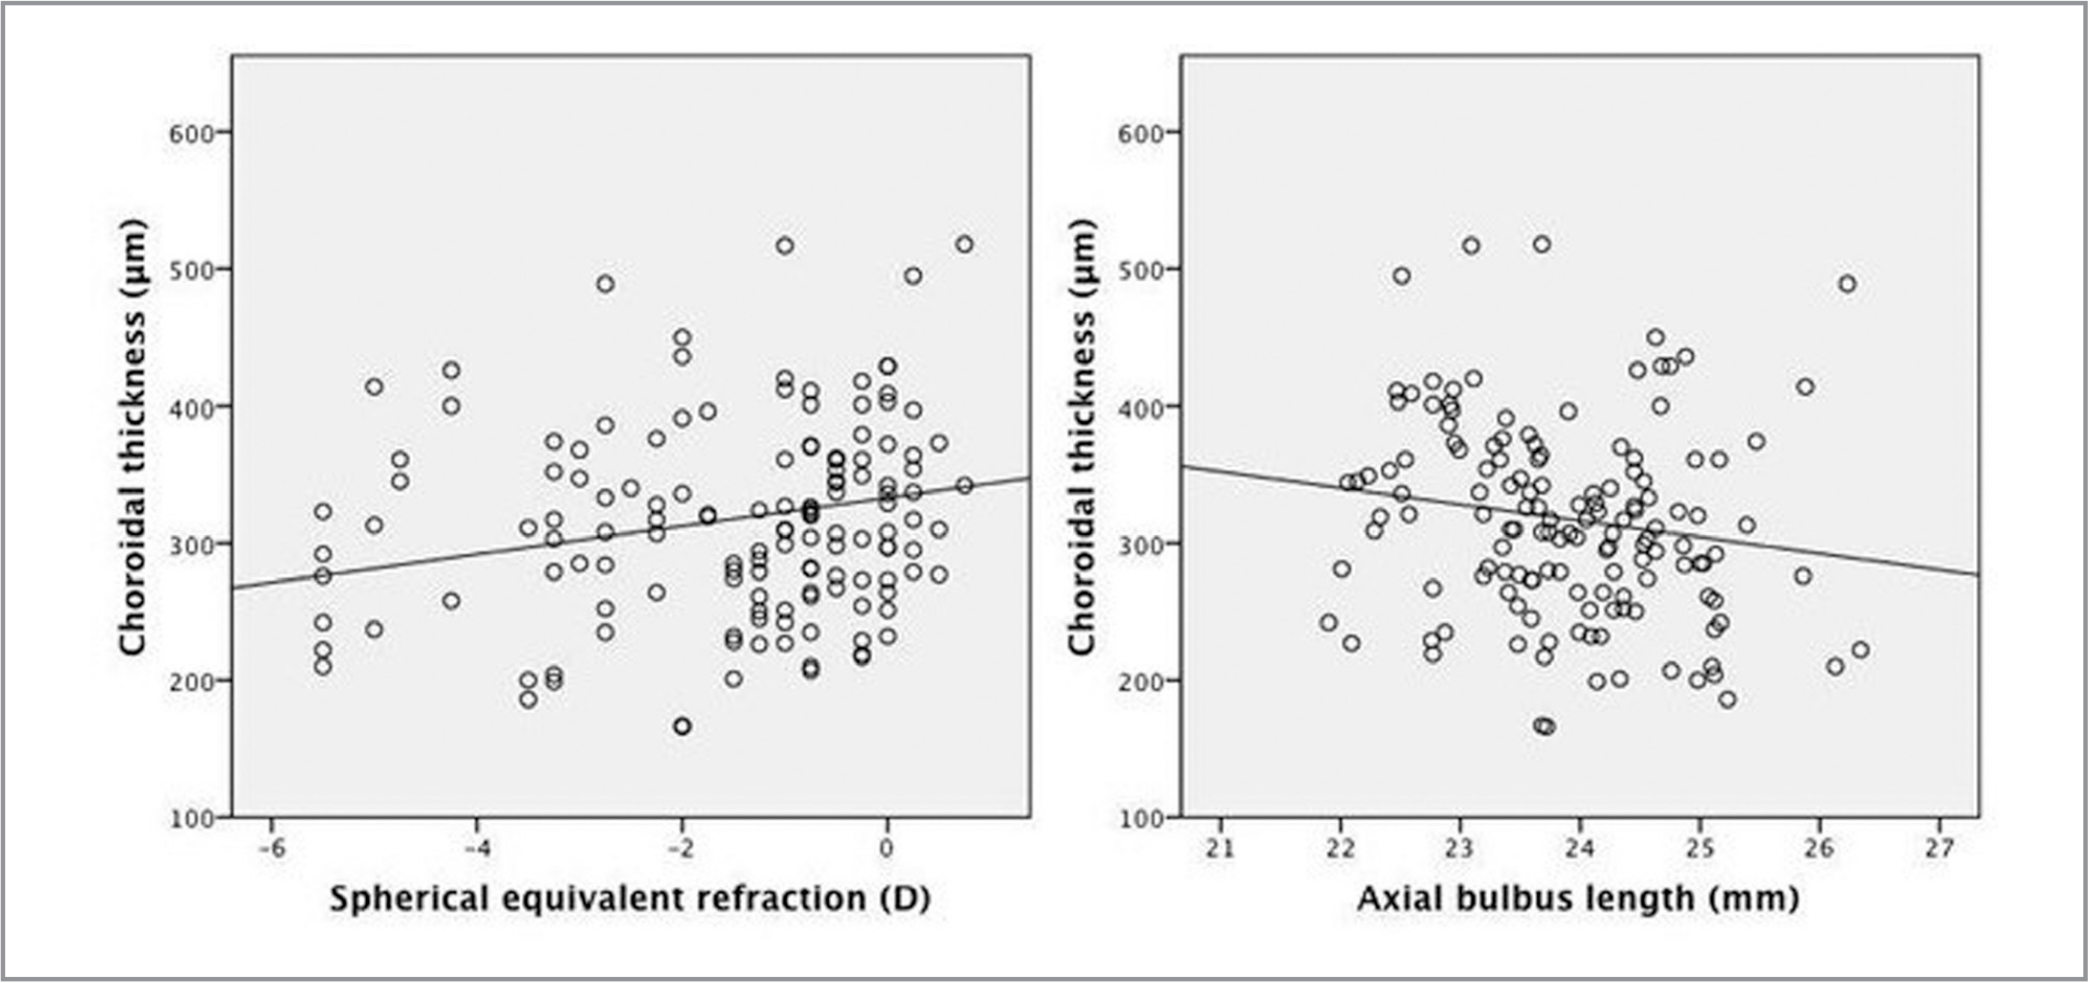 Correlation between choroidal thickness (CT) as the dependent variable versus spherical equivalent refraction (SER) and axial bulbus length (AL). Left, scatter plot showing SER (X axis) versus CT (Y axis), P = .017. Right, scatter plot showing AL (X axis) versus CT (Y axis), P = .180.